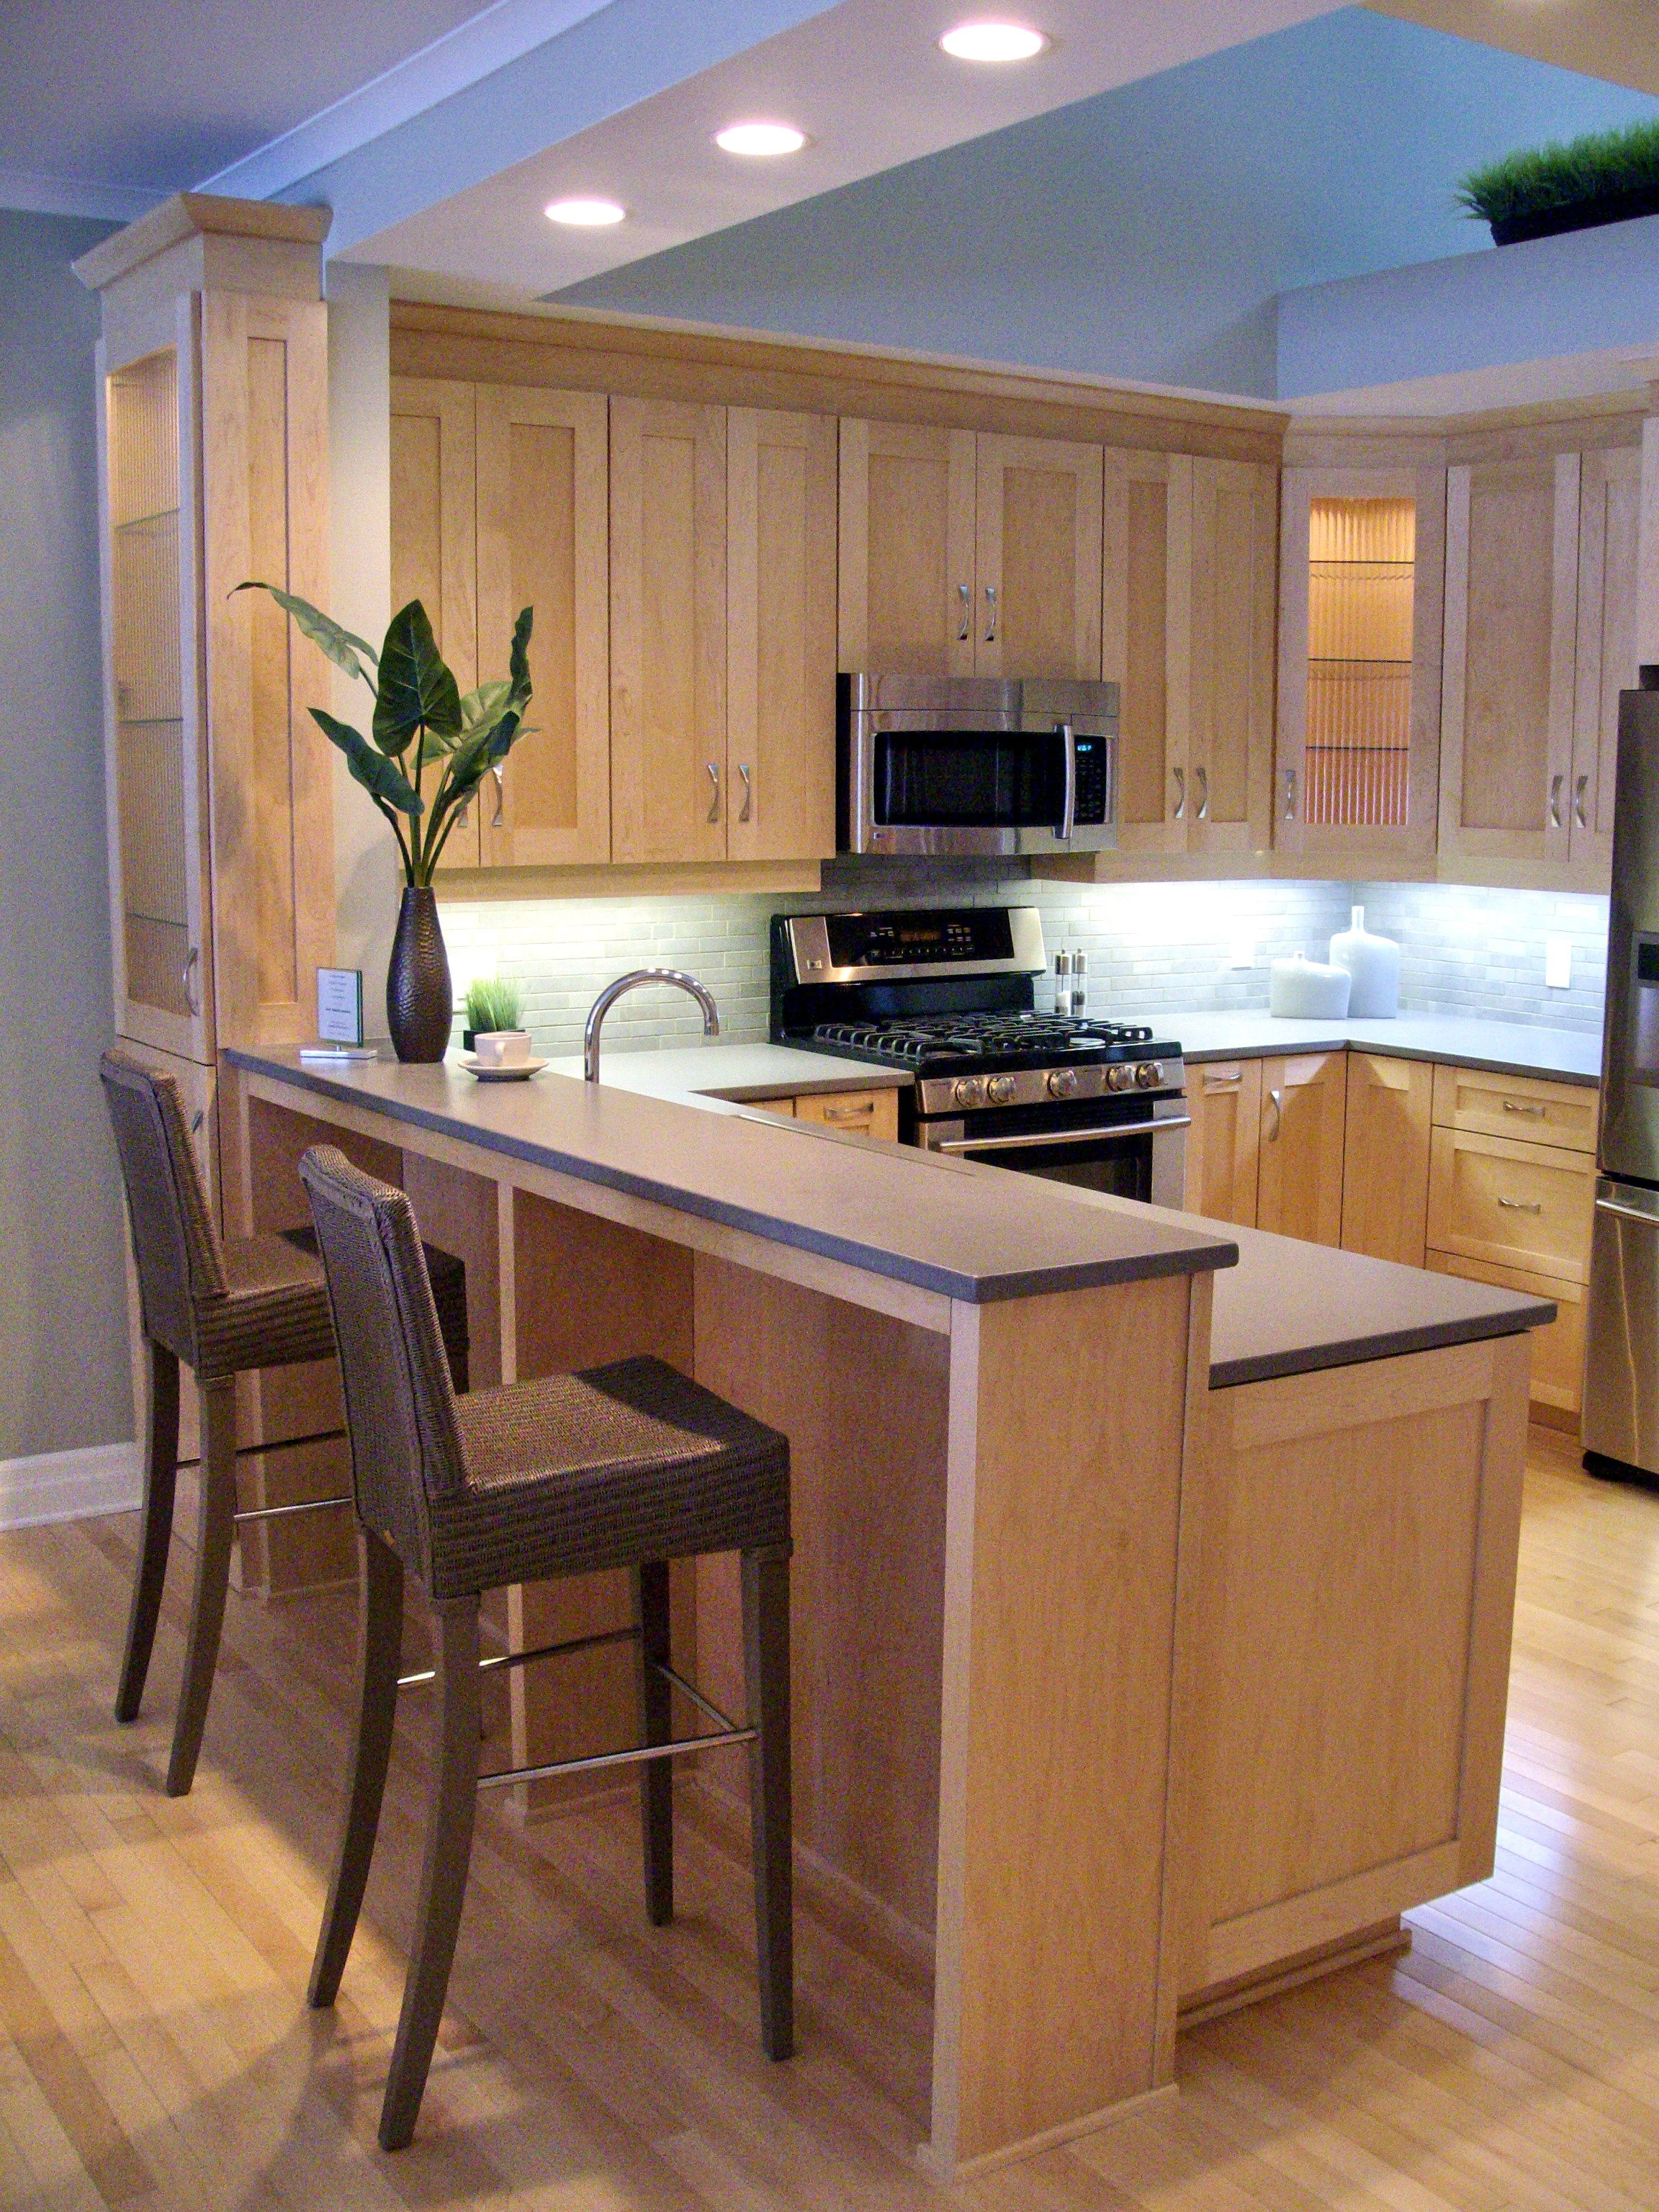 Natural Maple Shaker Cabinets, with Grey Silestone Quartz ... on Kitchen Countertops With Maple Cabinets  id=16134